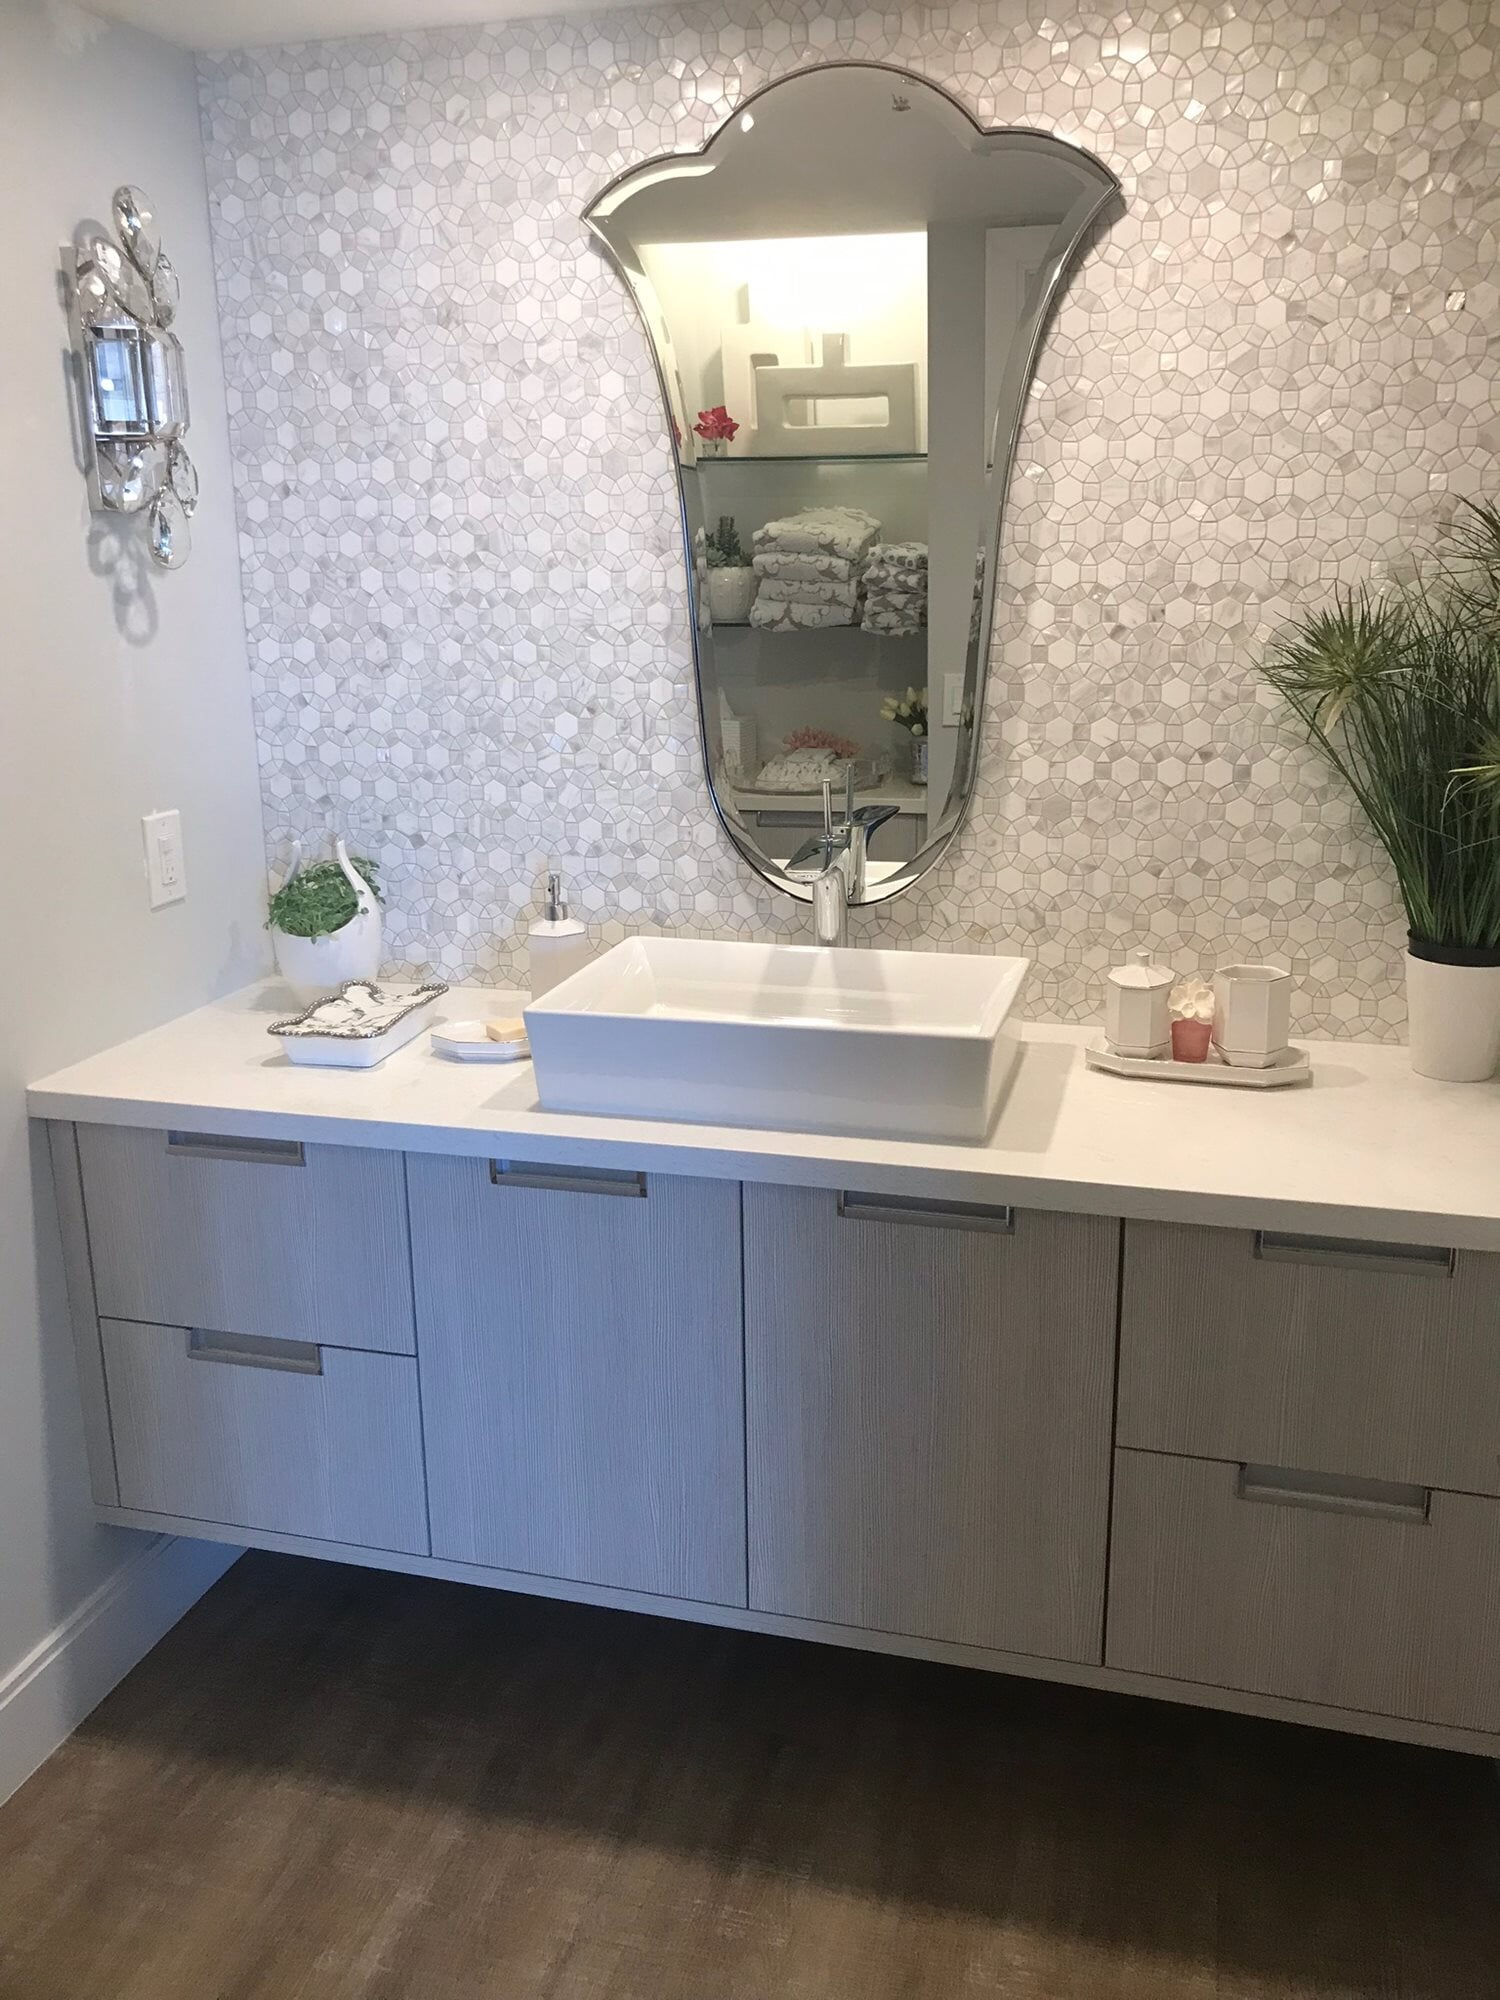 Light tone bathroom design in Juno Beach, FL from Floors For You Kitchen & Bath